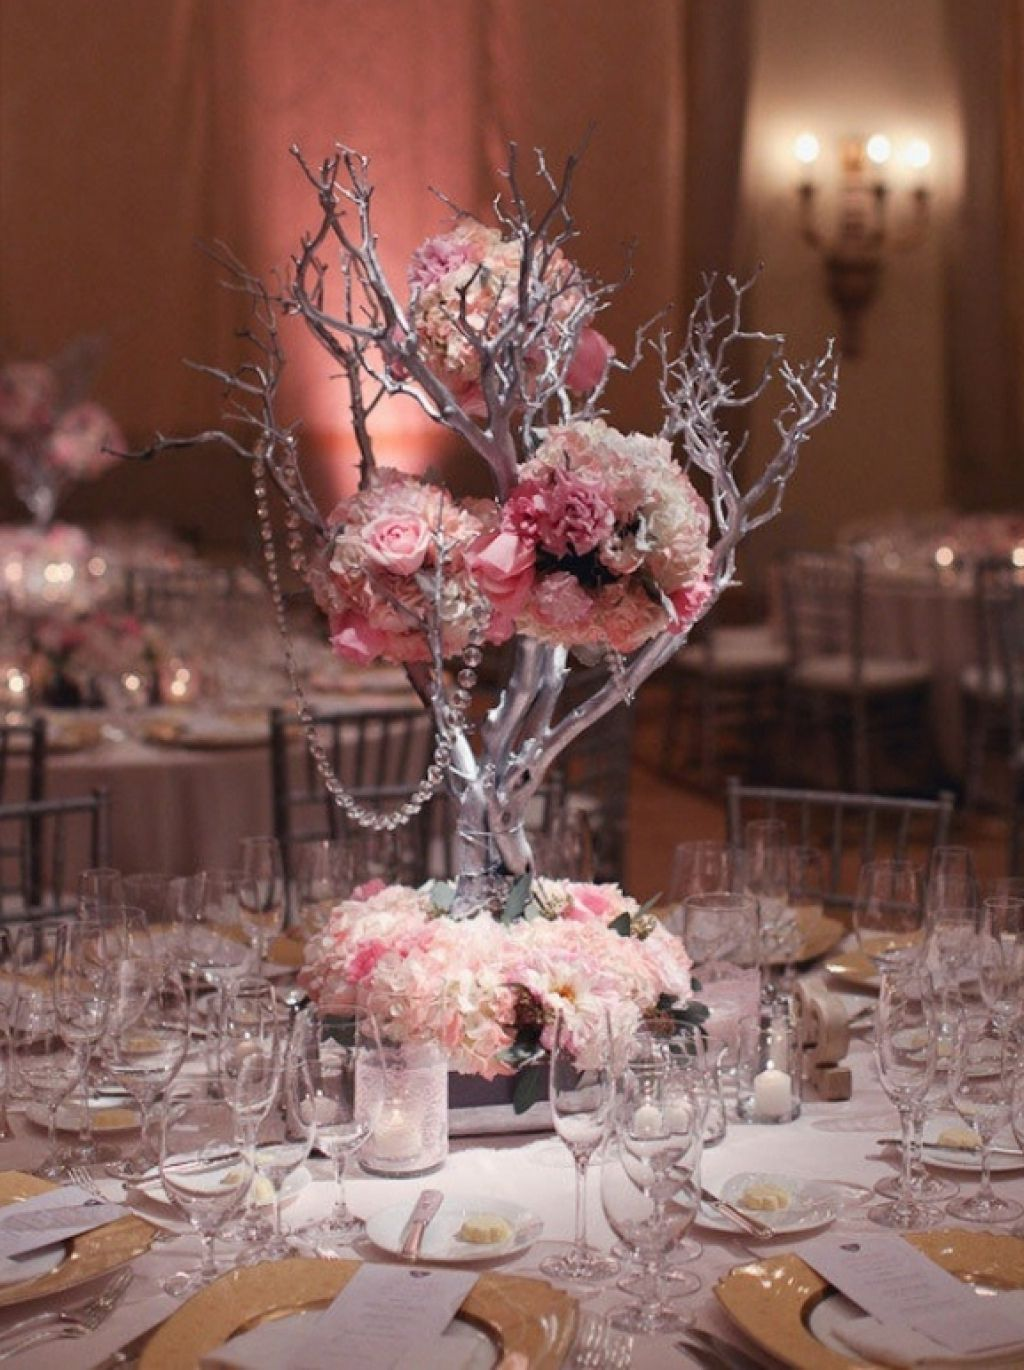 Wedding decorations on tables  making inexpensive wedding decoration centerpiecescaroline wedding